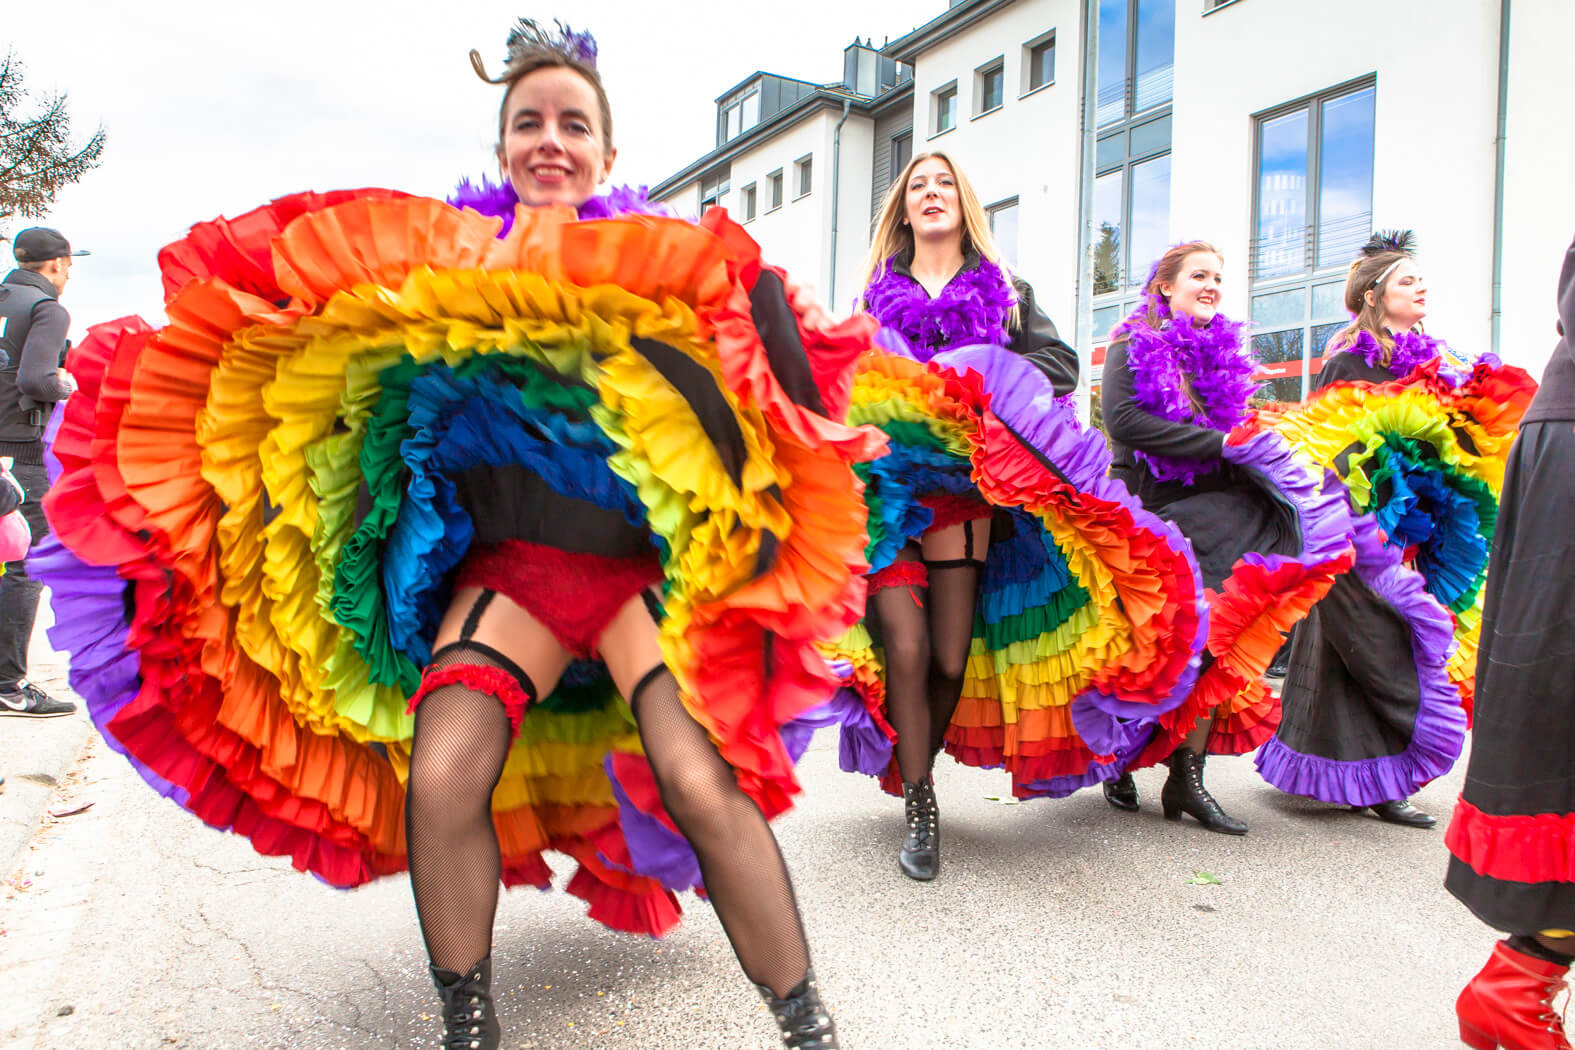 Karneval 2017 in Bad Honnef by Ulrich Dohle Fotografie